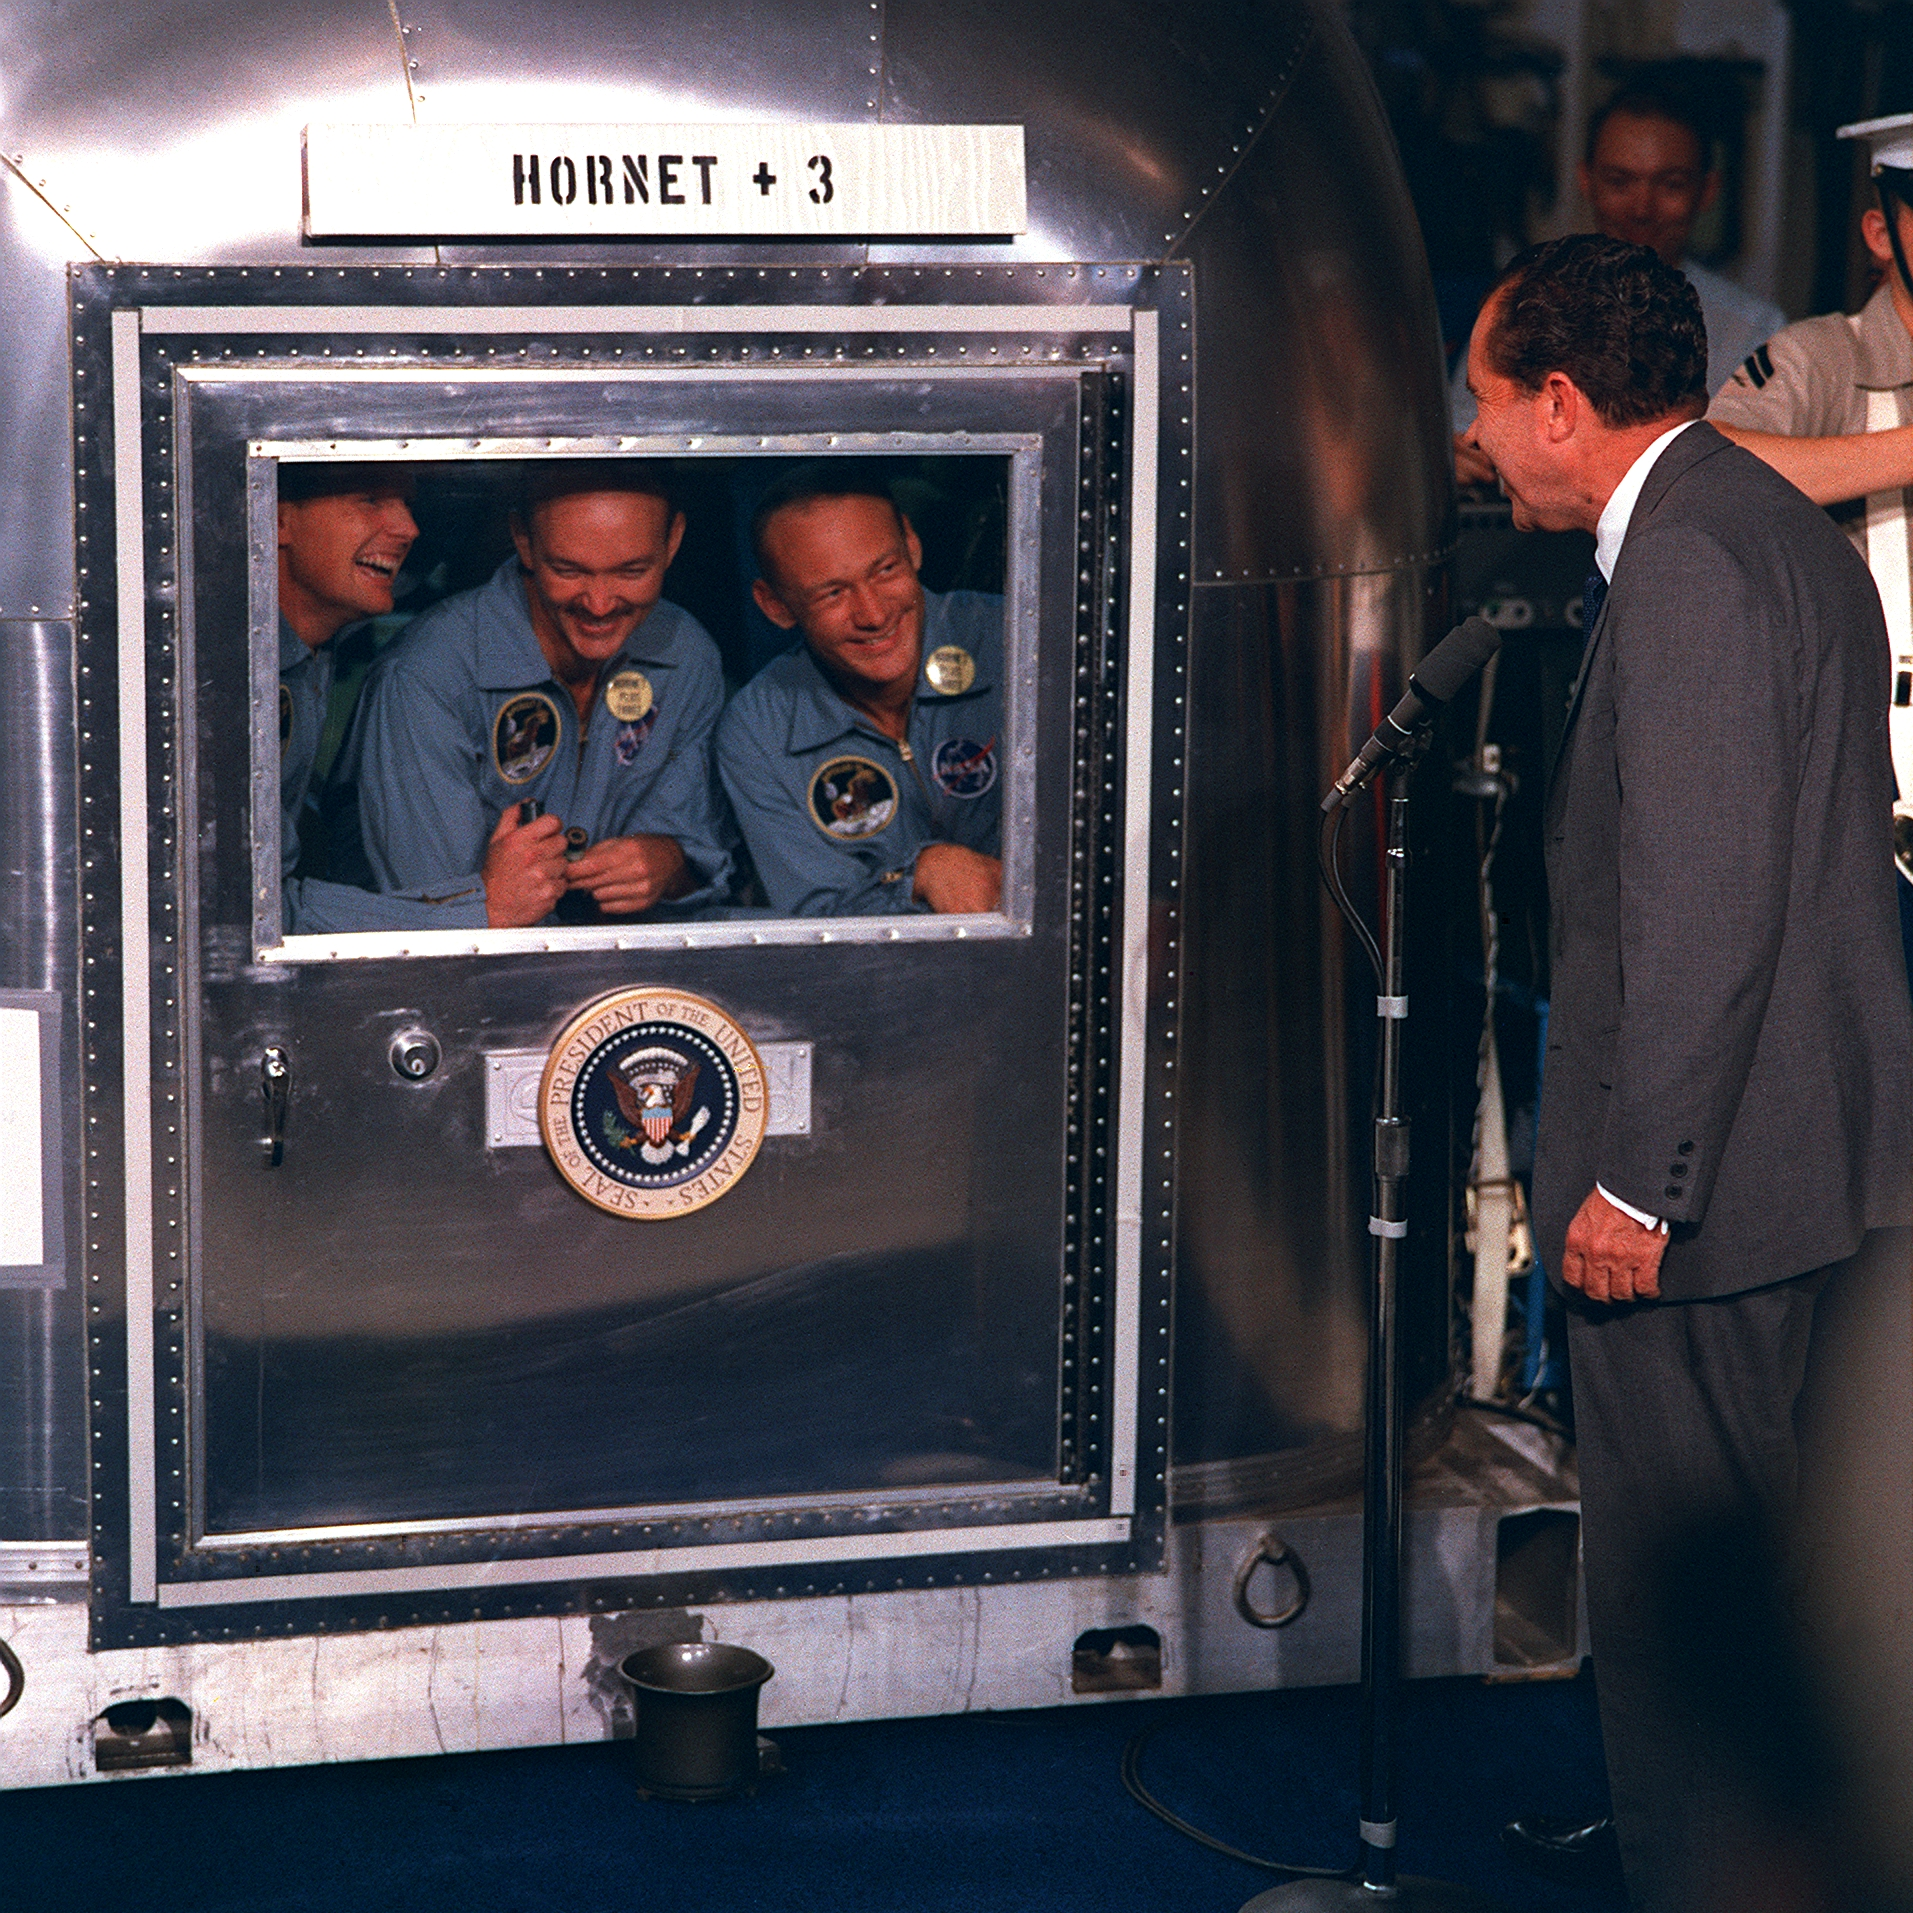 In 1969, US President Richard Nixon greets the Apollo 11 crew, who have just returned from the Moon.   NASA/Wikimedia Commons  (public domain)